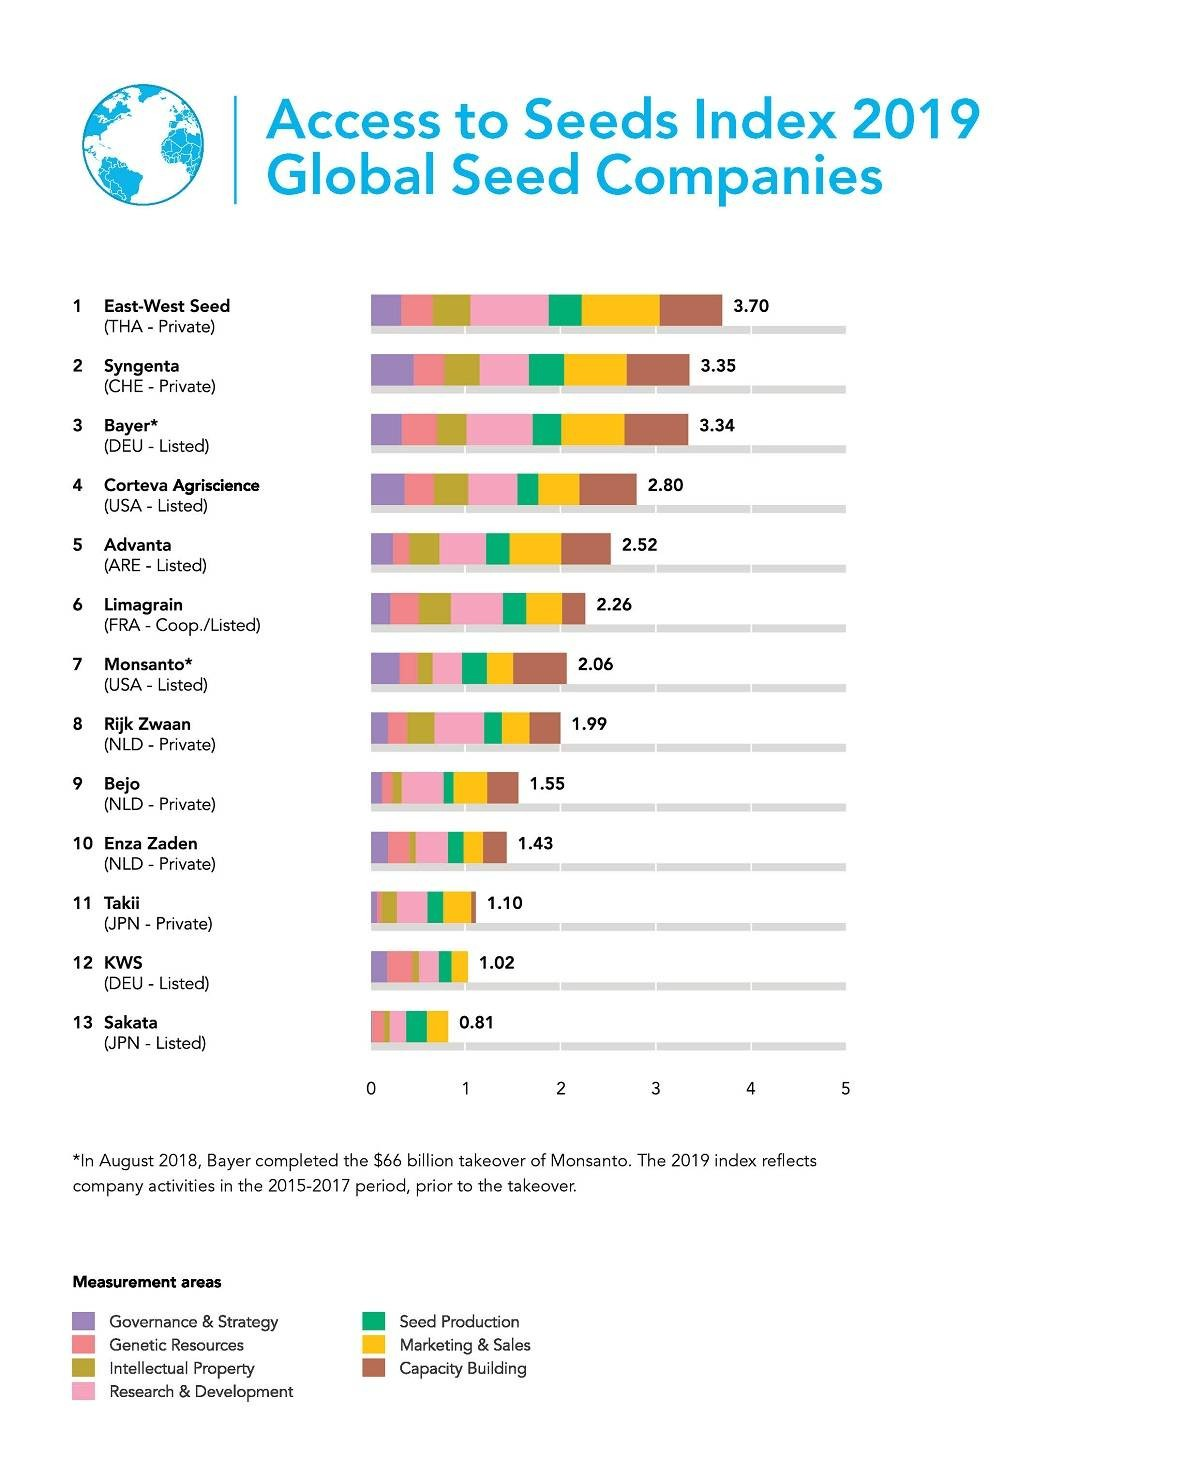 East-West Seed stays on top of Access to Seeds Index